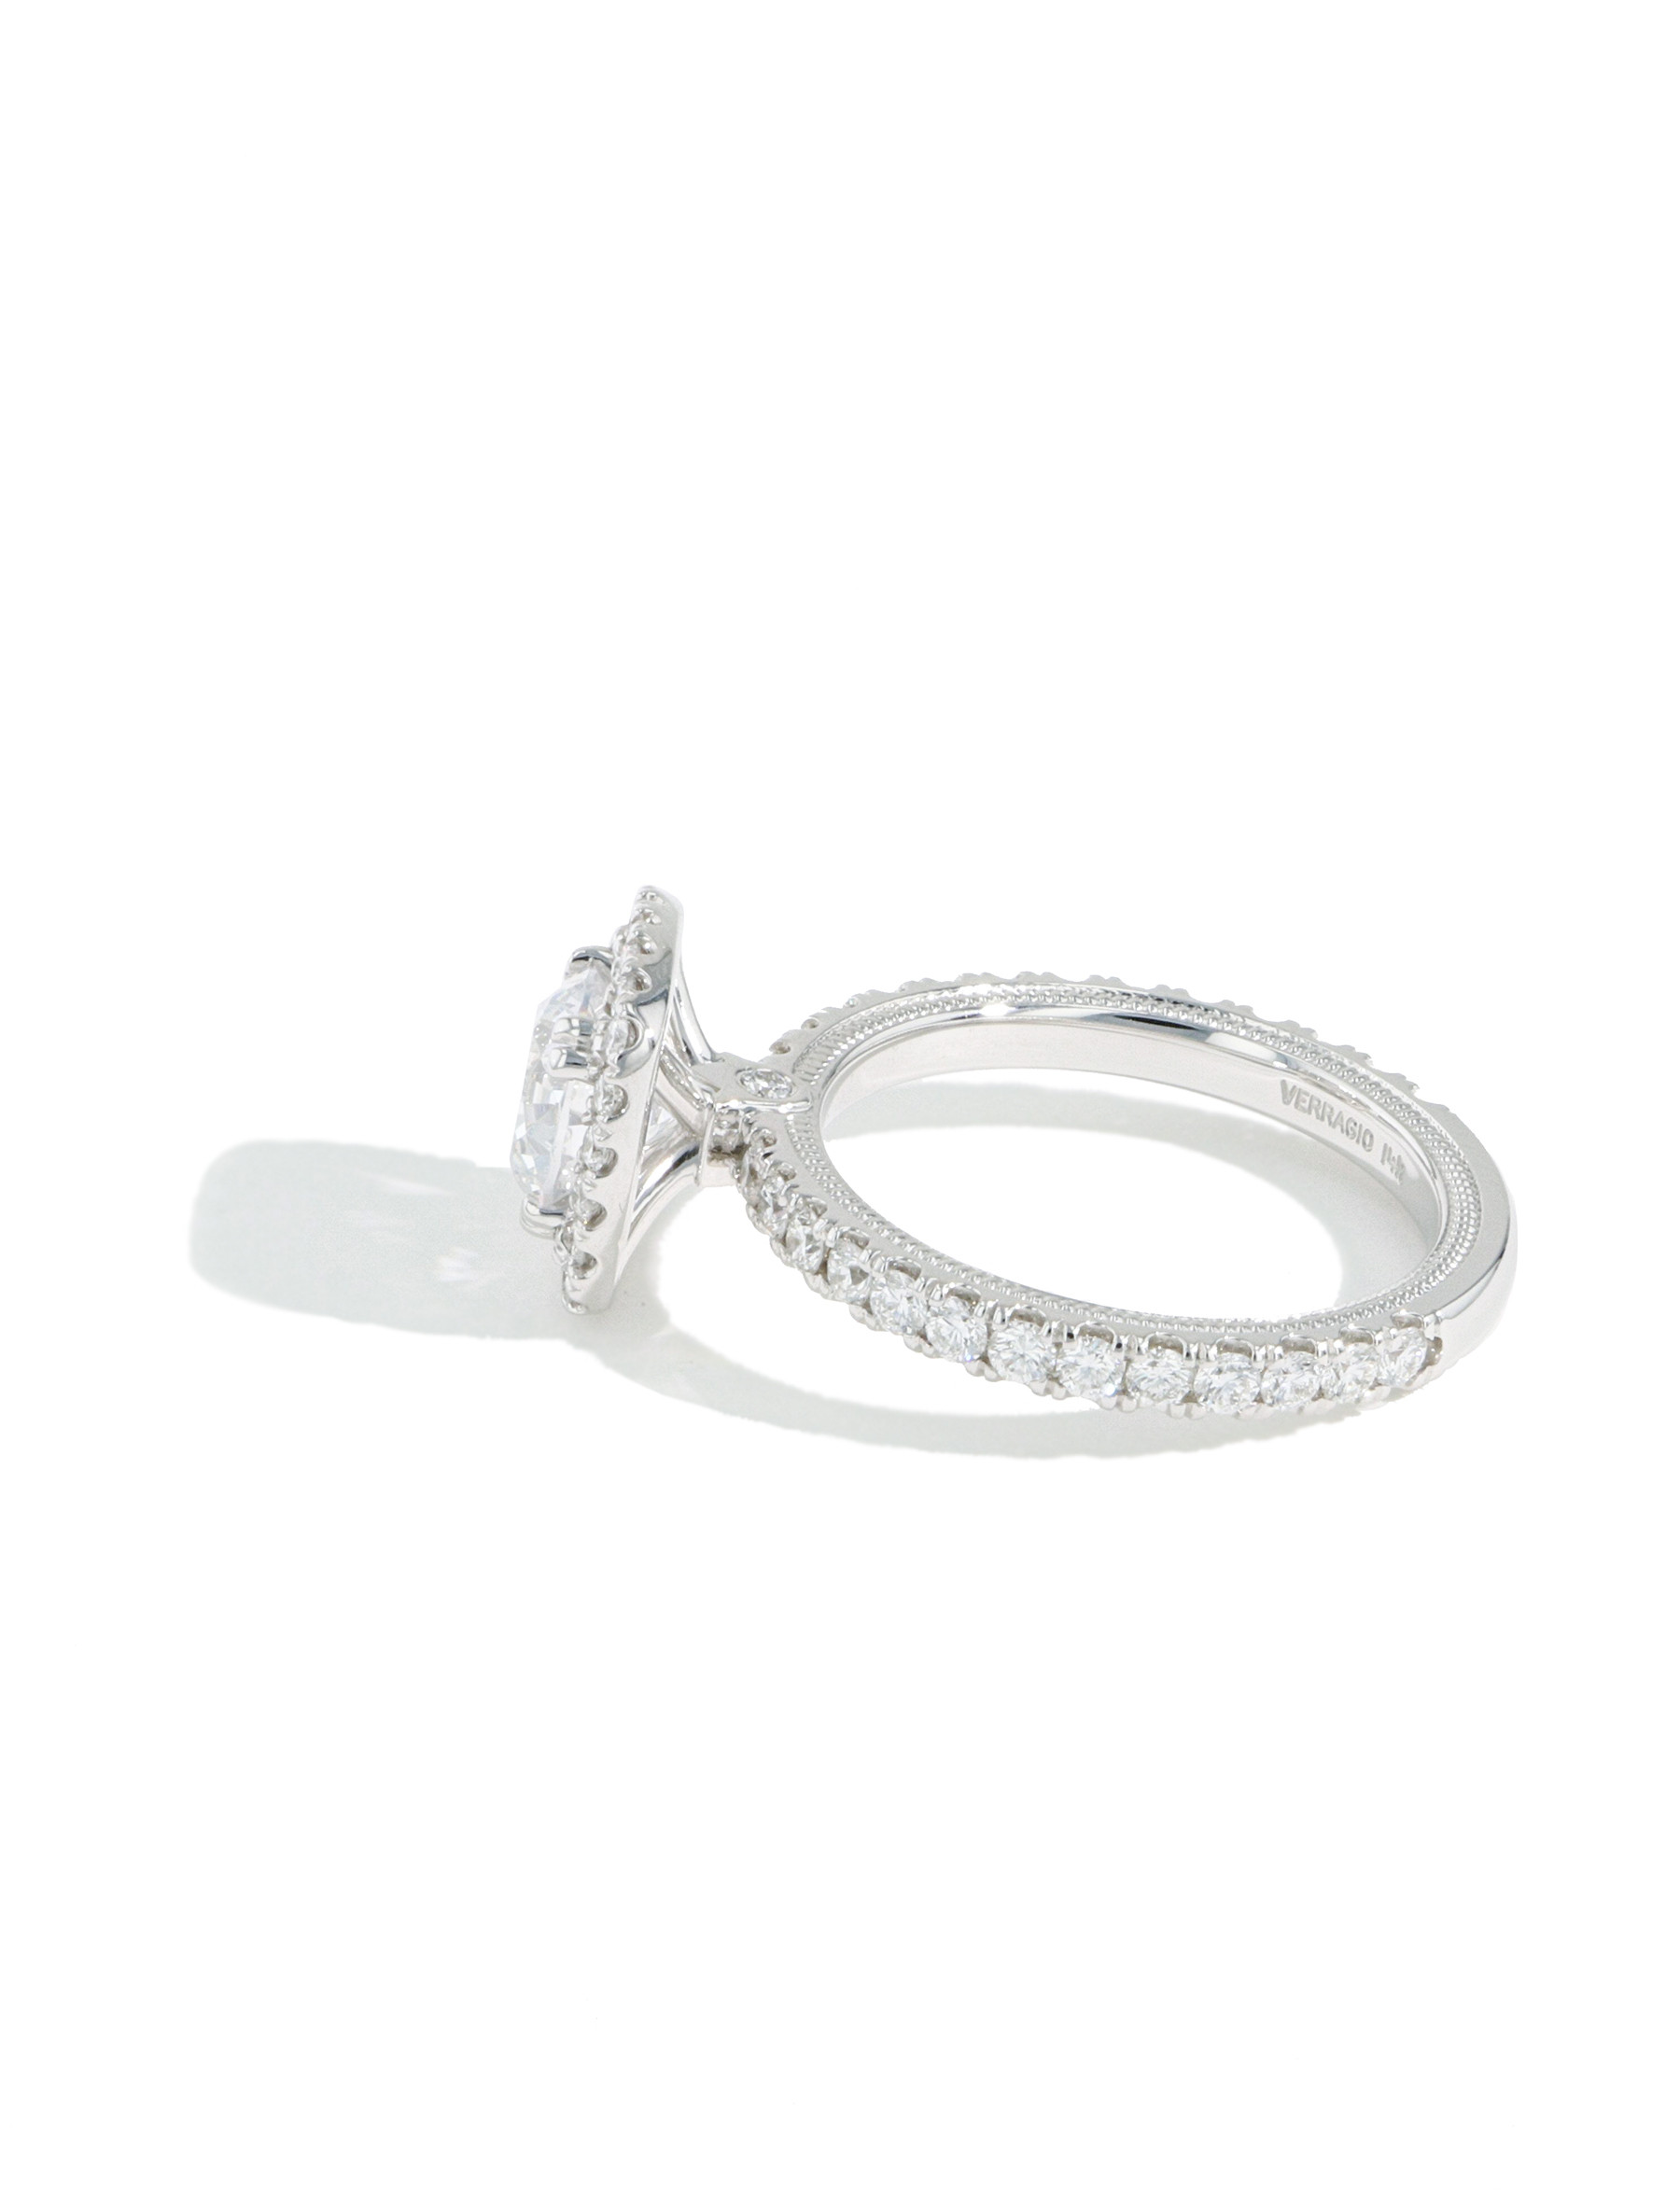 Verragio Tradition Round Diamond Cushion Halo Engagement Ring Setting side view